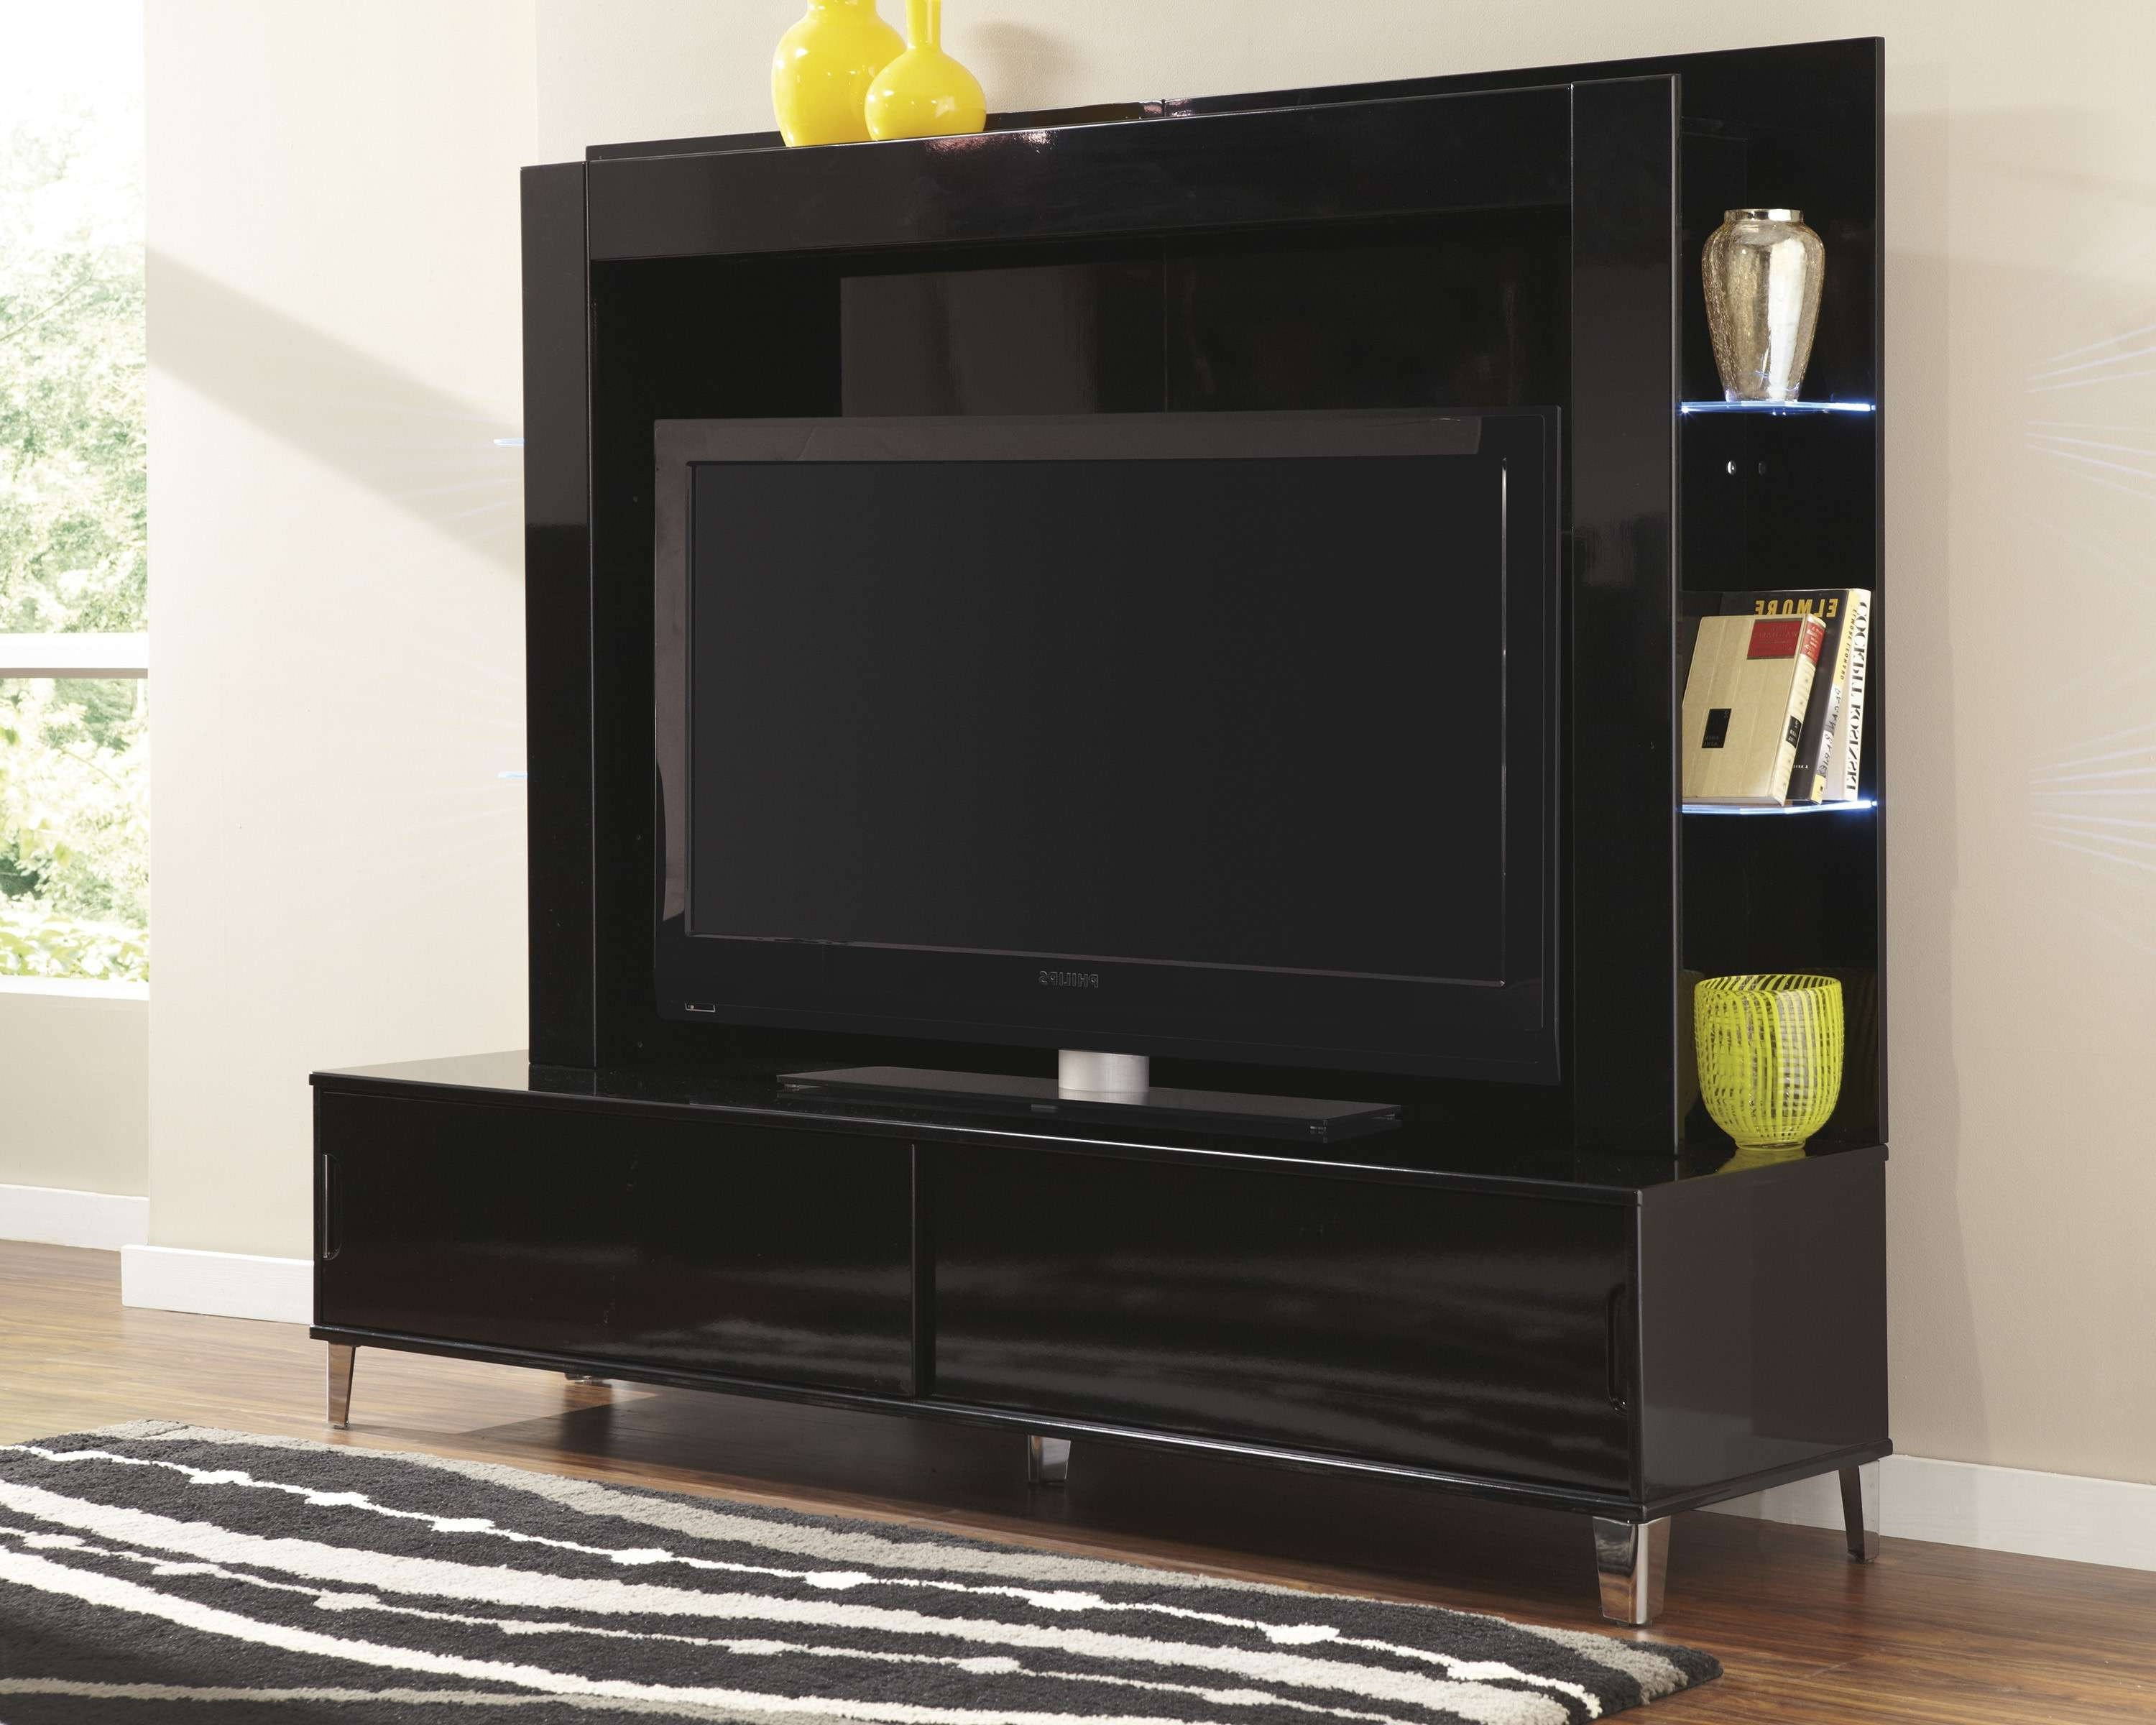 Furniture : Exotic Tall Corner Tv Stands For Flat Screens Flat Intended For Contemporary Tv Stands For Flat Screens (View 6 of 15)